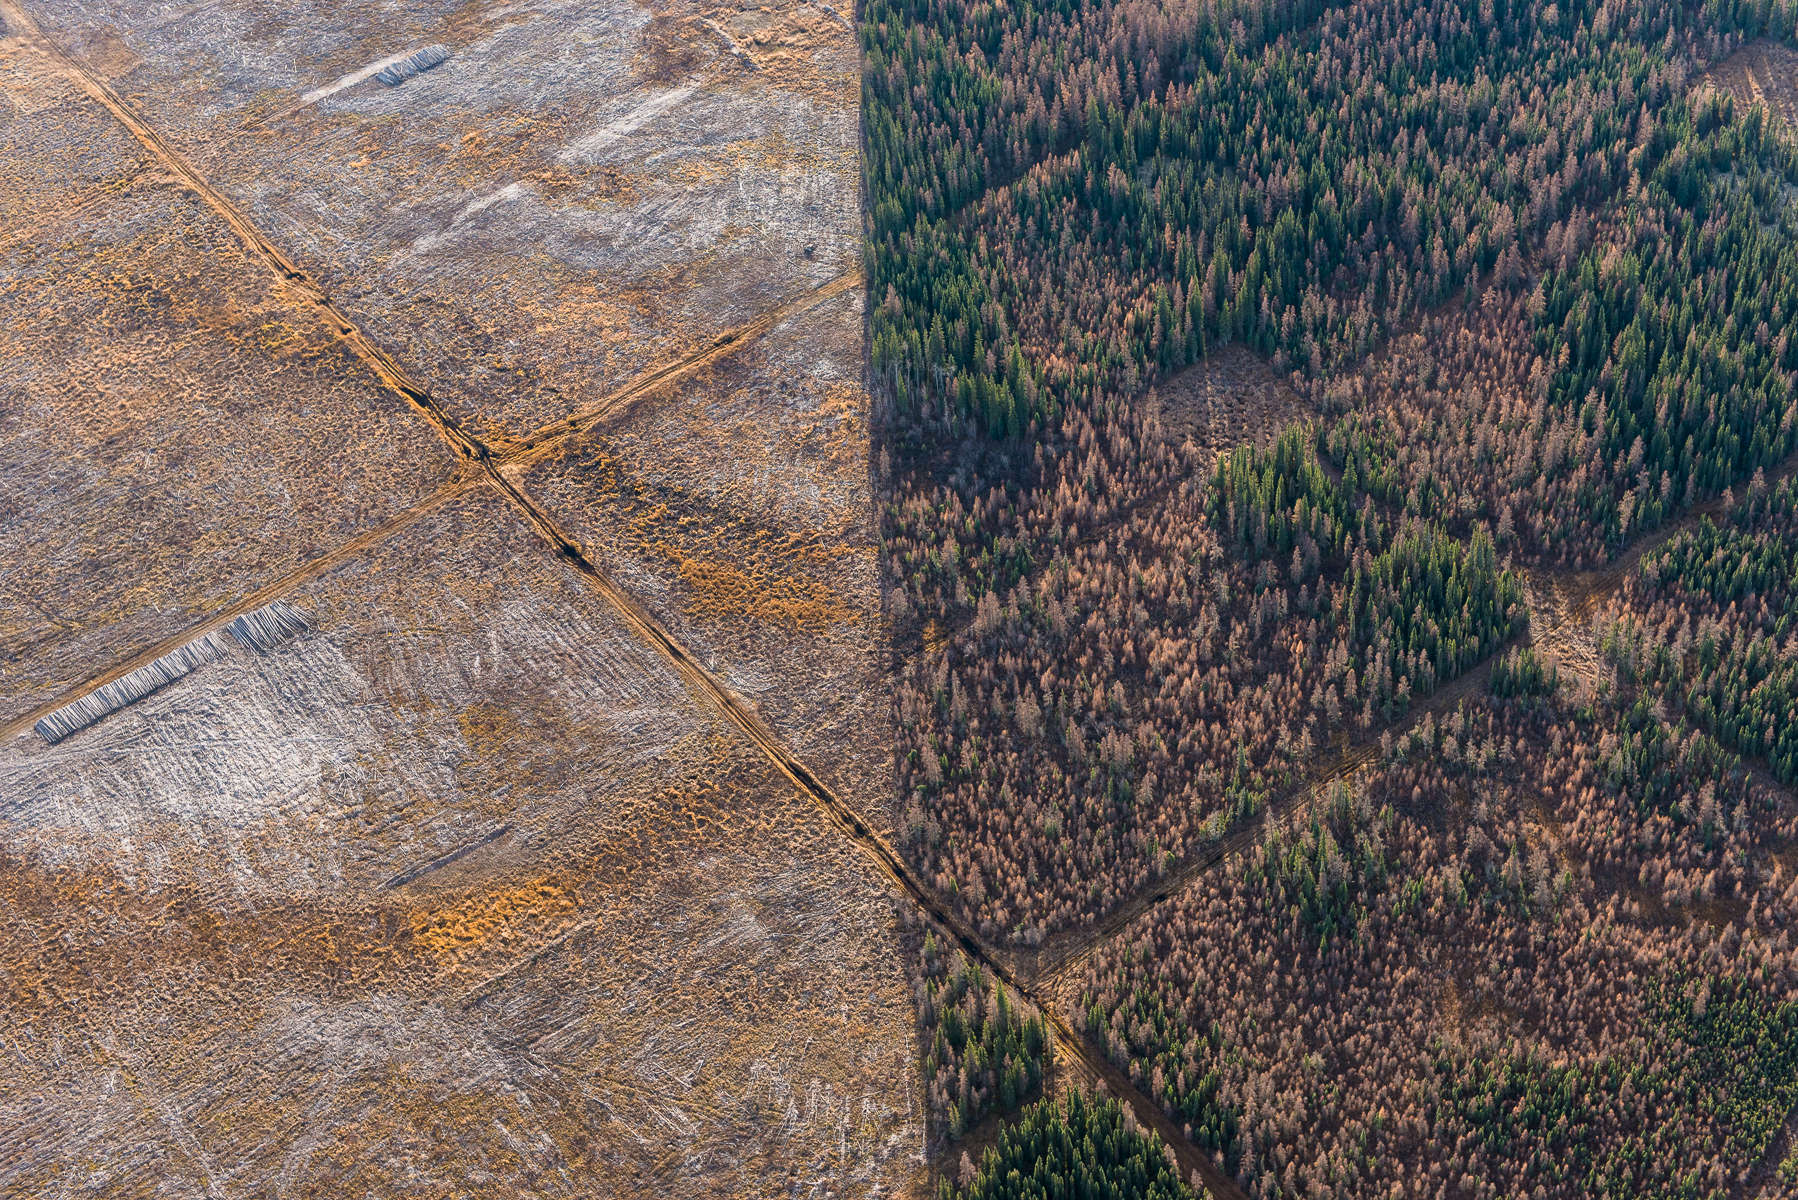 Clearing of boreal forest/{quote}over burden.{quote} Alberta Tar/Oil Sands Northern Alberta, Canada.